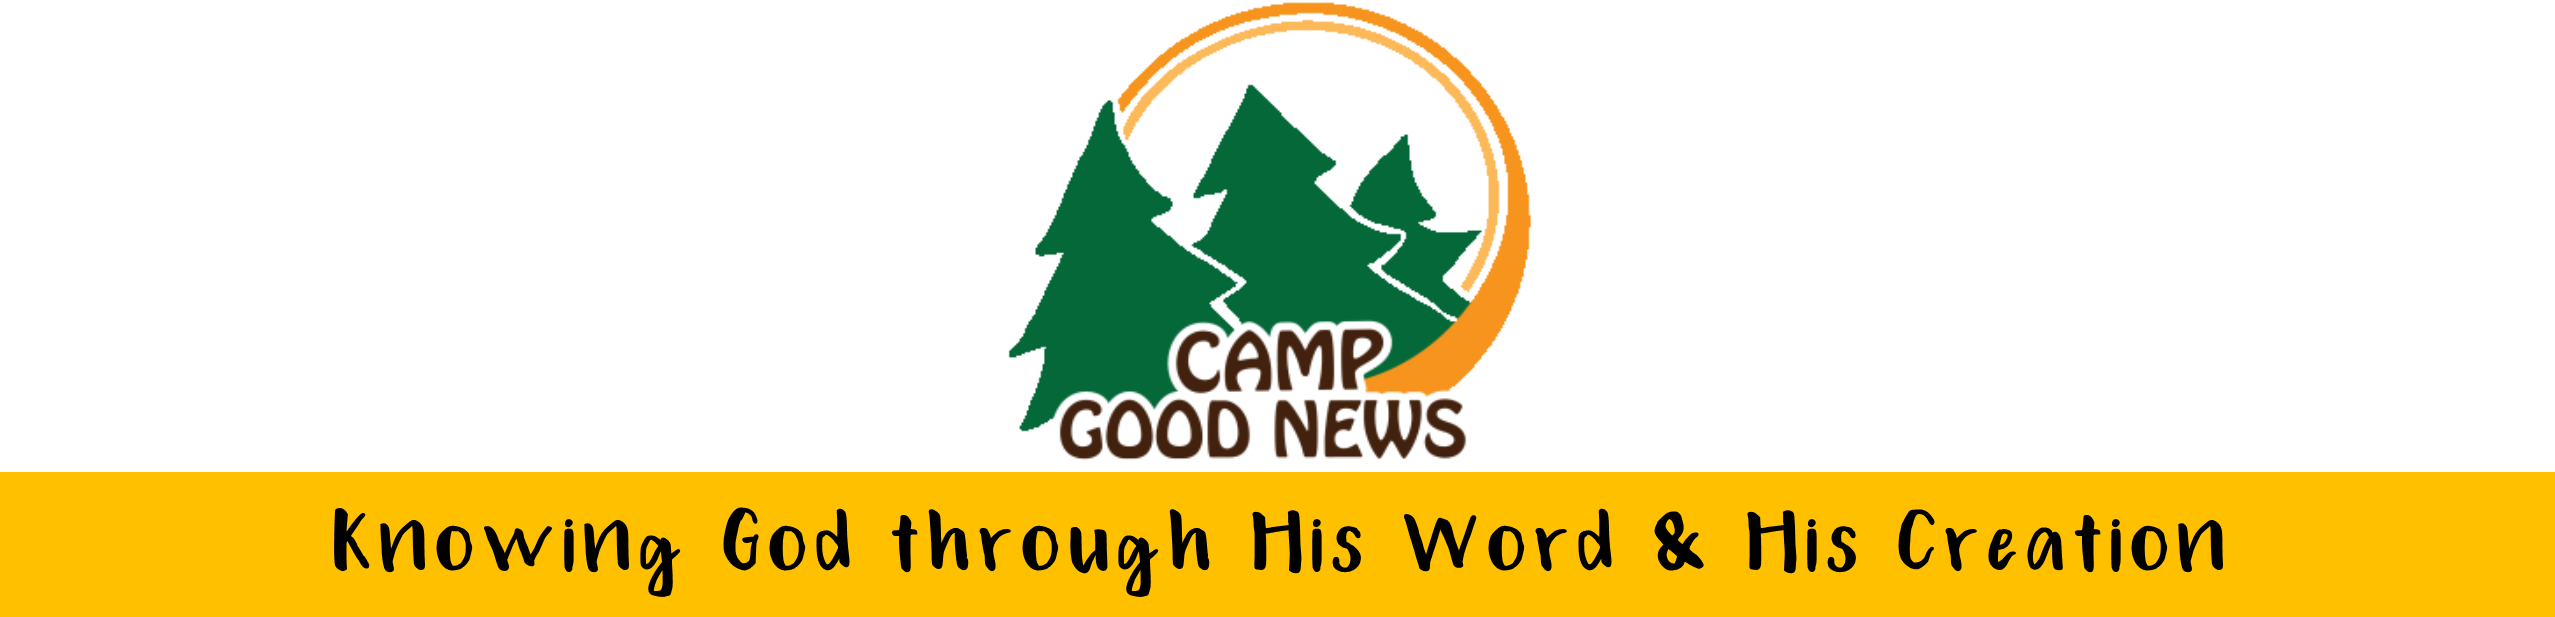 Knowing God through His Word & His Creation